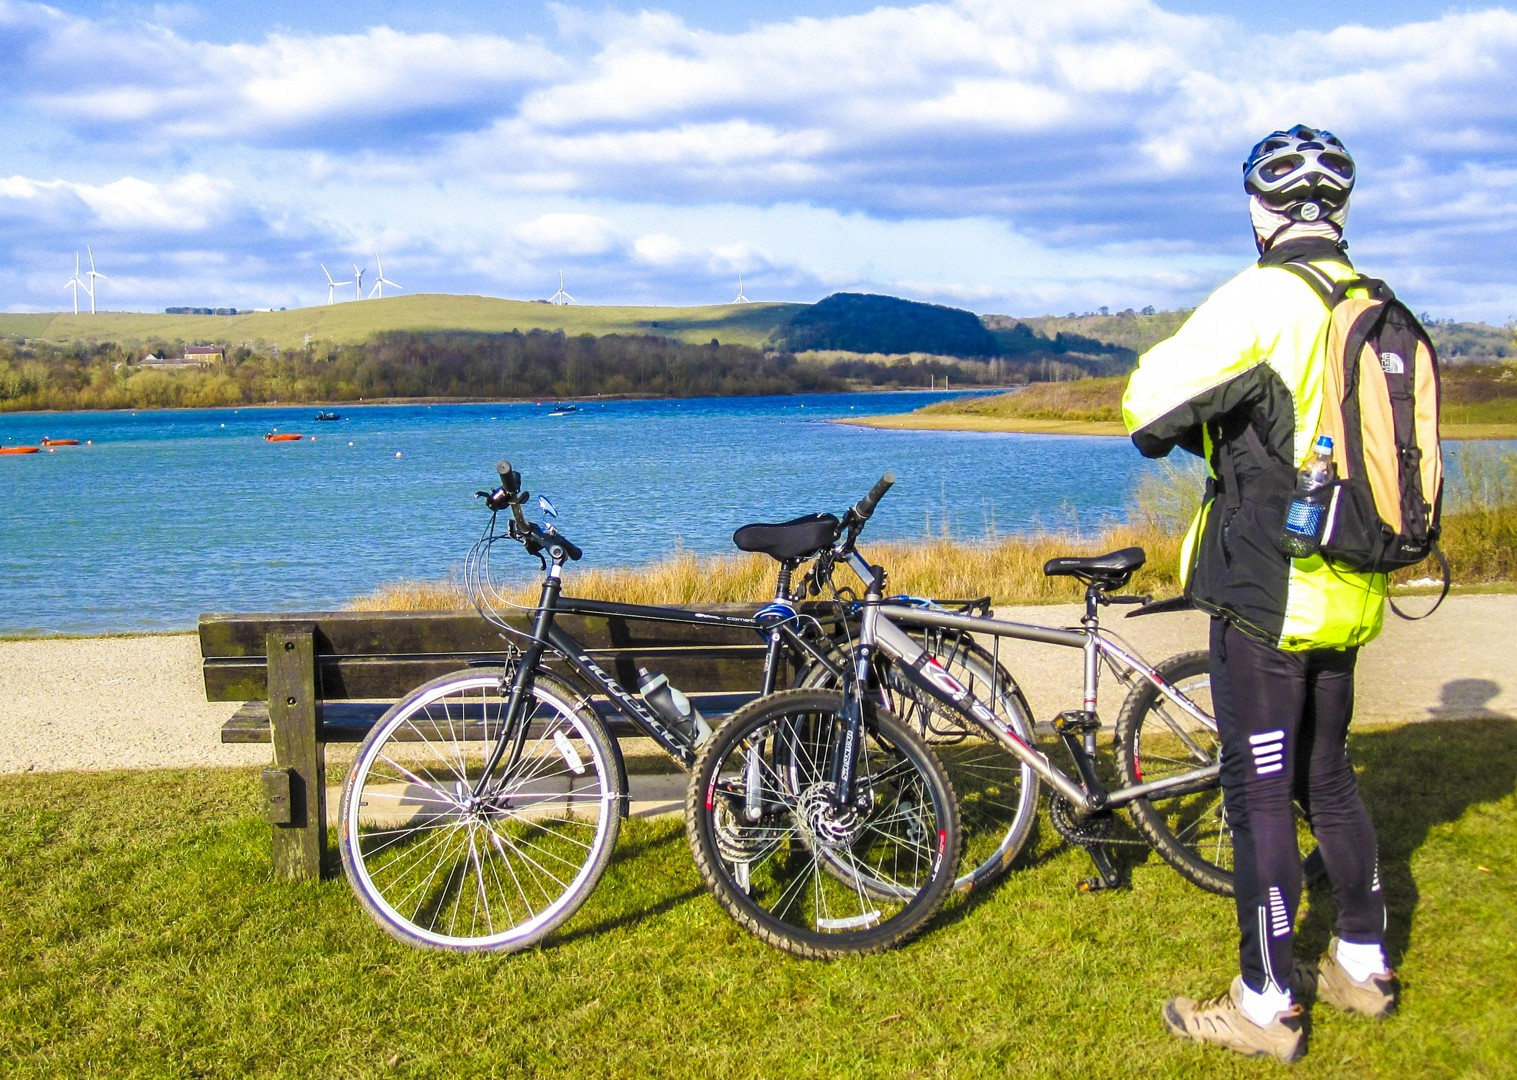 saddle-skedaddle-guided-cycling-leisure-british-countryside-lakes.jpg - UK - Derbyshire Dales - Dovedale - Guided Leisure Cycling Holiday - Leisure Cycling